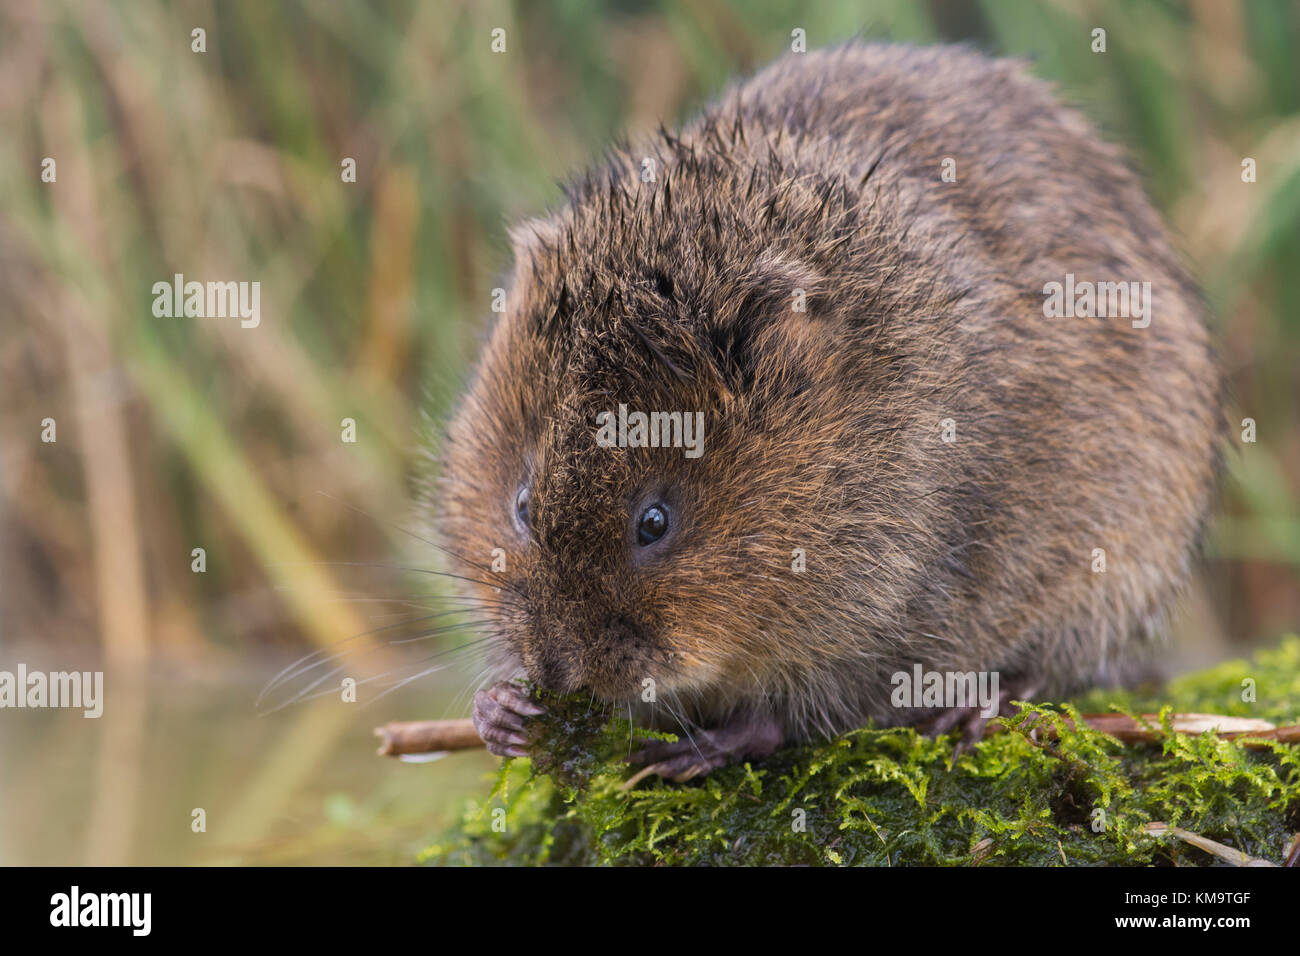 British Water Vole (Arvicola amphibius) eating on a moss covered rock - England, United Kingdom - Stock Image